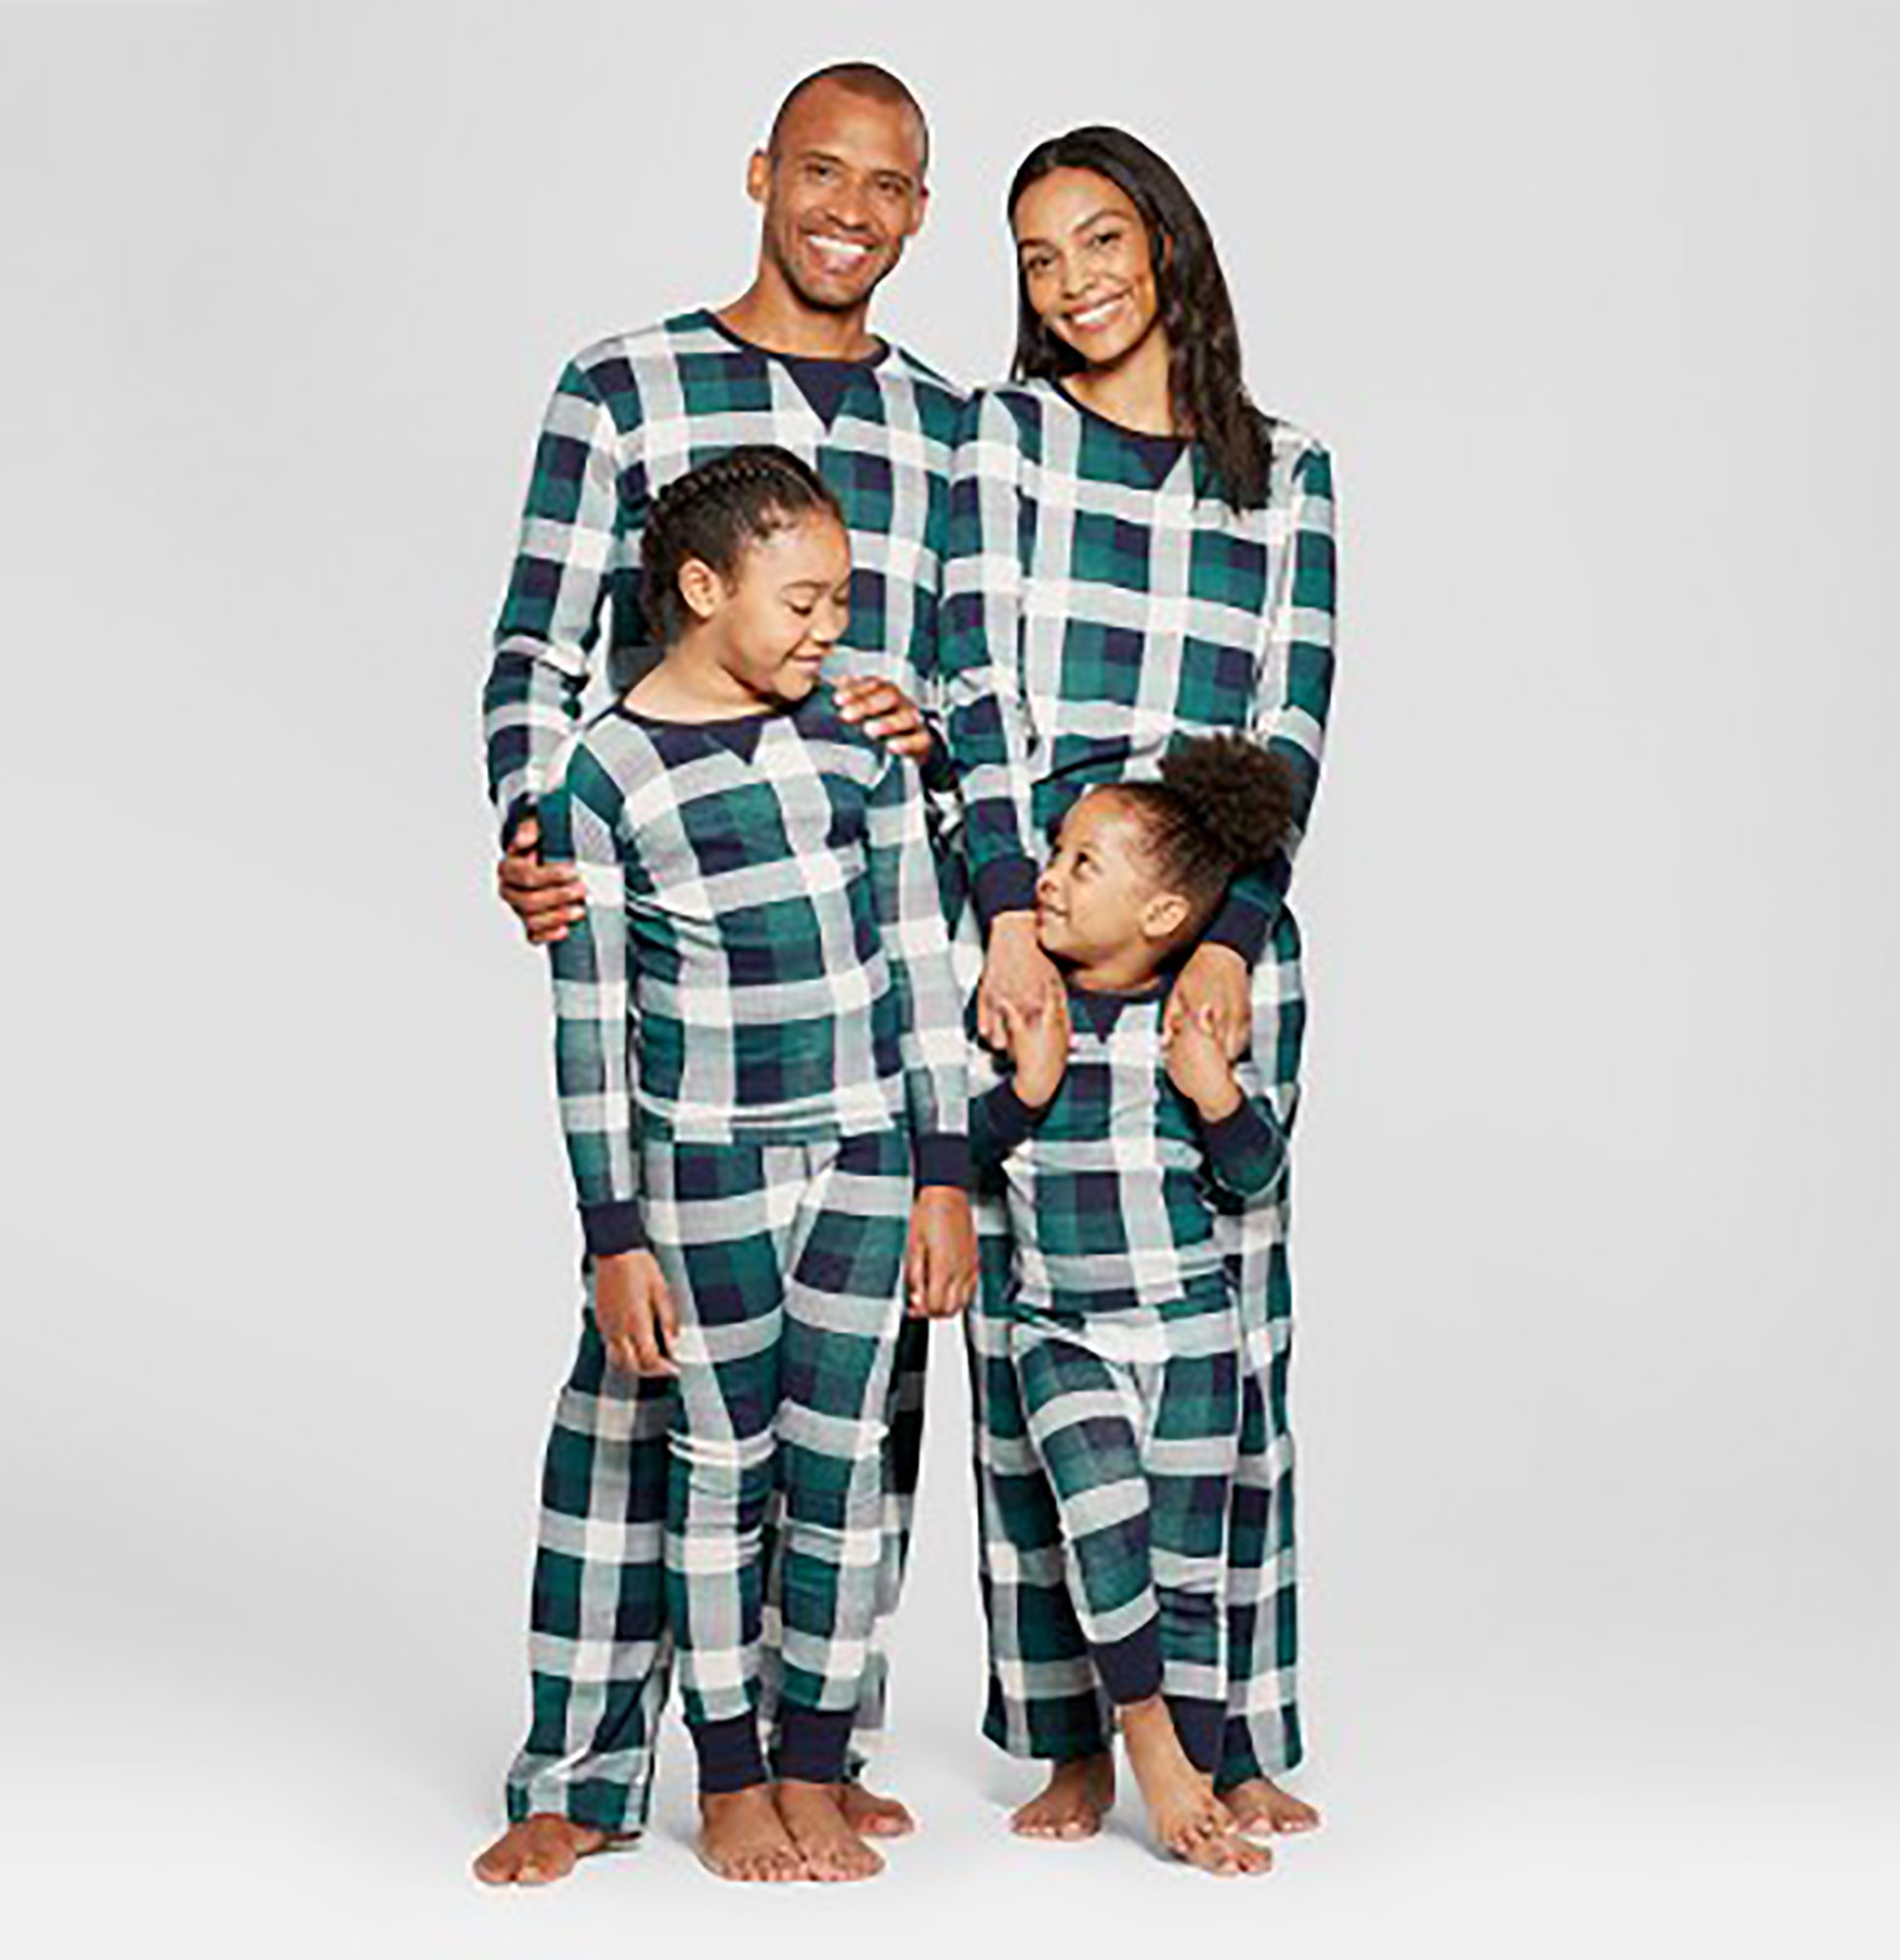 Best Matching Family Christmas Pajamas for 2018 - Family Holiday Pajamas 38d9c5061